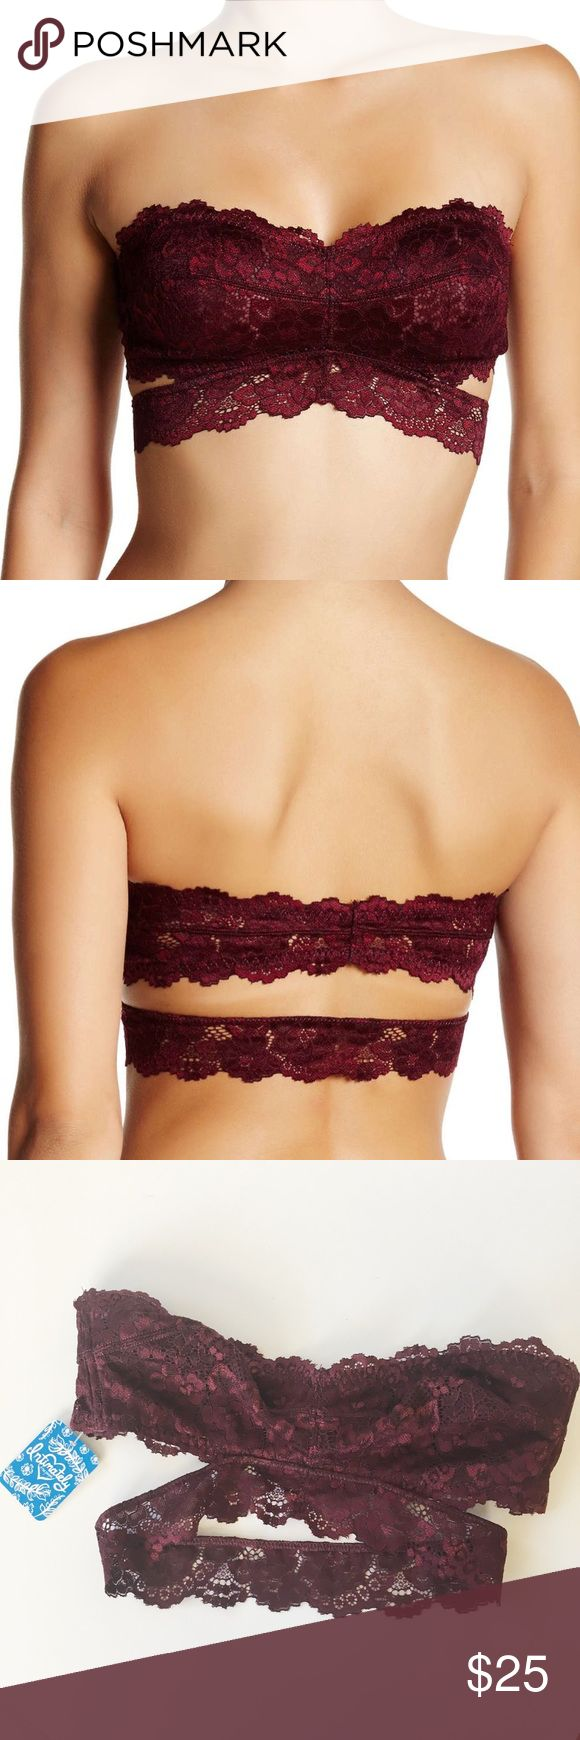 Free People Lace Bandeau Bralette New with tags lace strapless bralette in wine color. Size XS. By Intimately by Free People. Free People Intimates & Sleepwear Bras